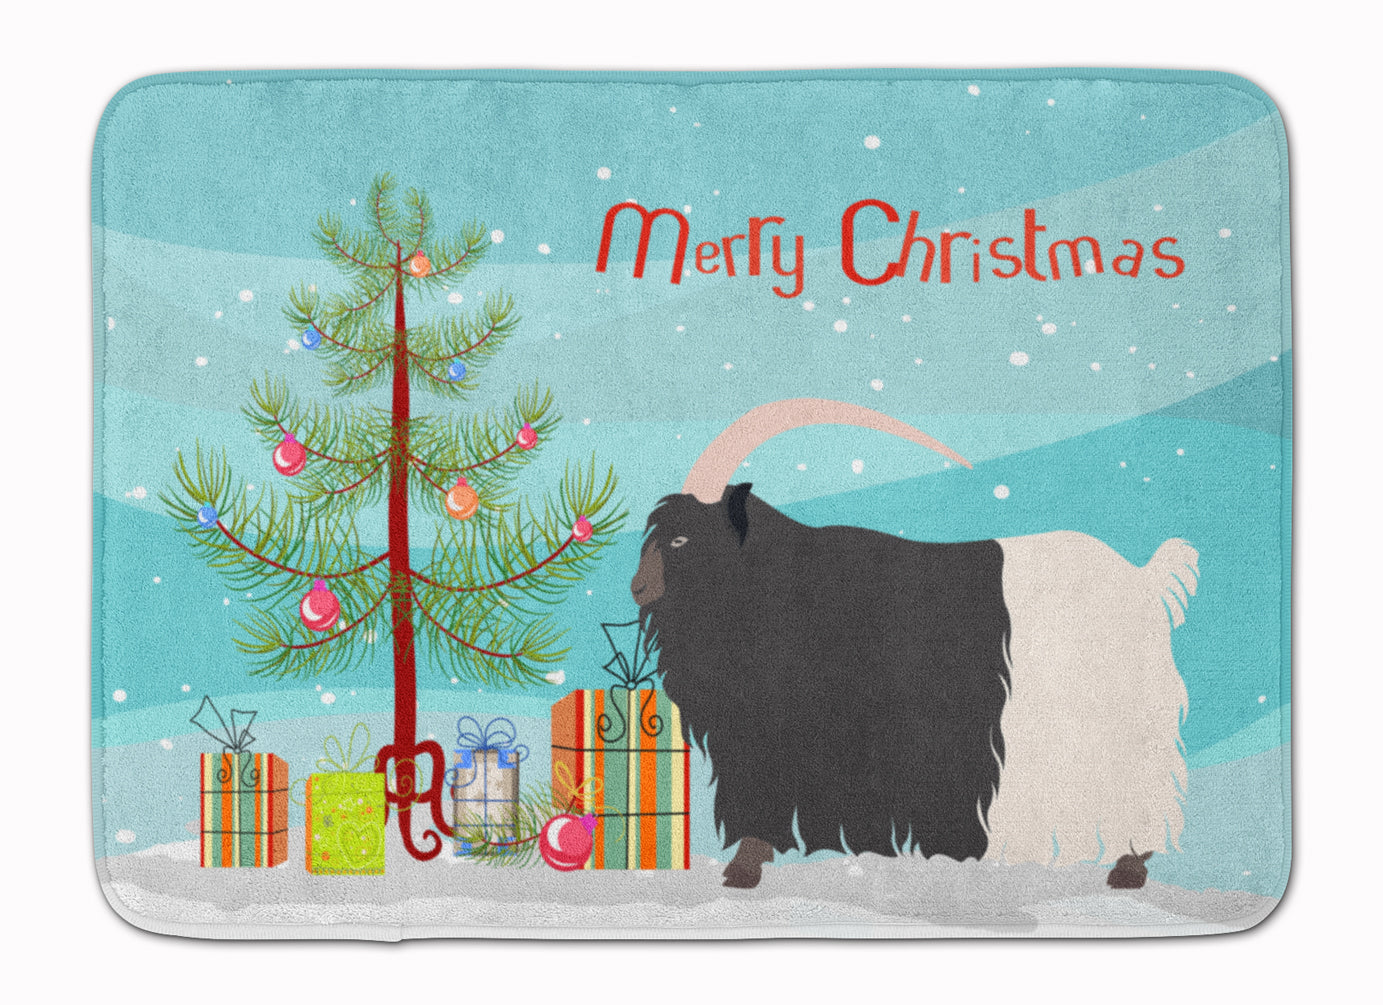 Welsh Black-Necked Goat Christmas Machine Washable Memory Foam Mat BB9254RUG by Caroline's Treasures